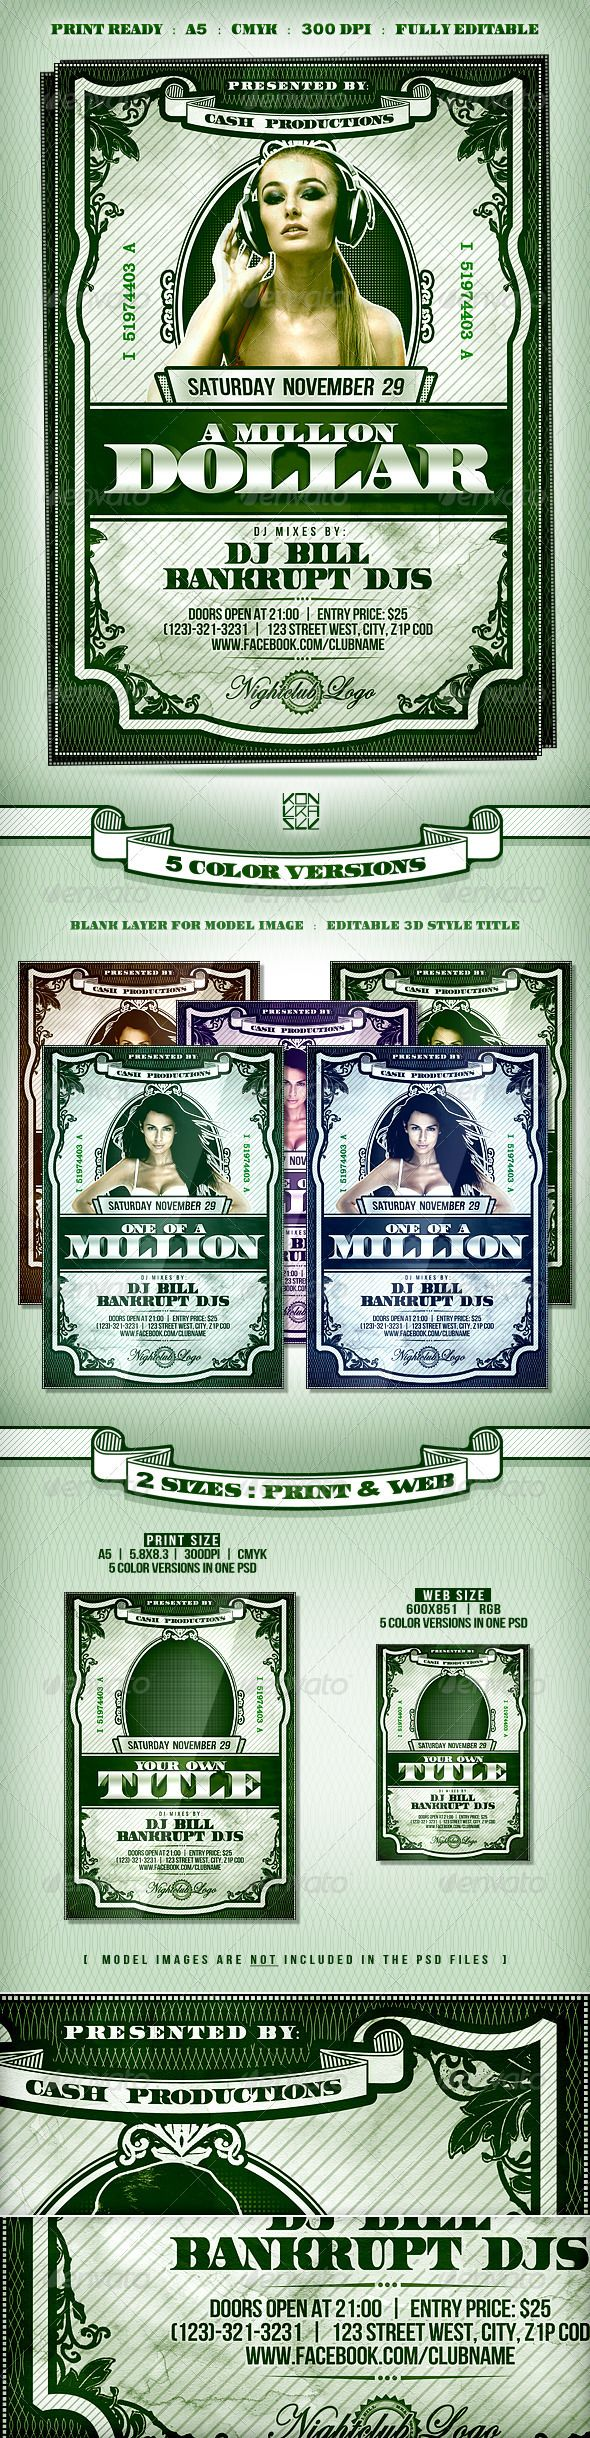 dollar flyer is a classic template based on the usdollar money bills design style which will promote your event in a rich and luxury way